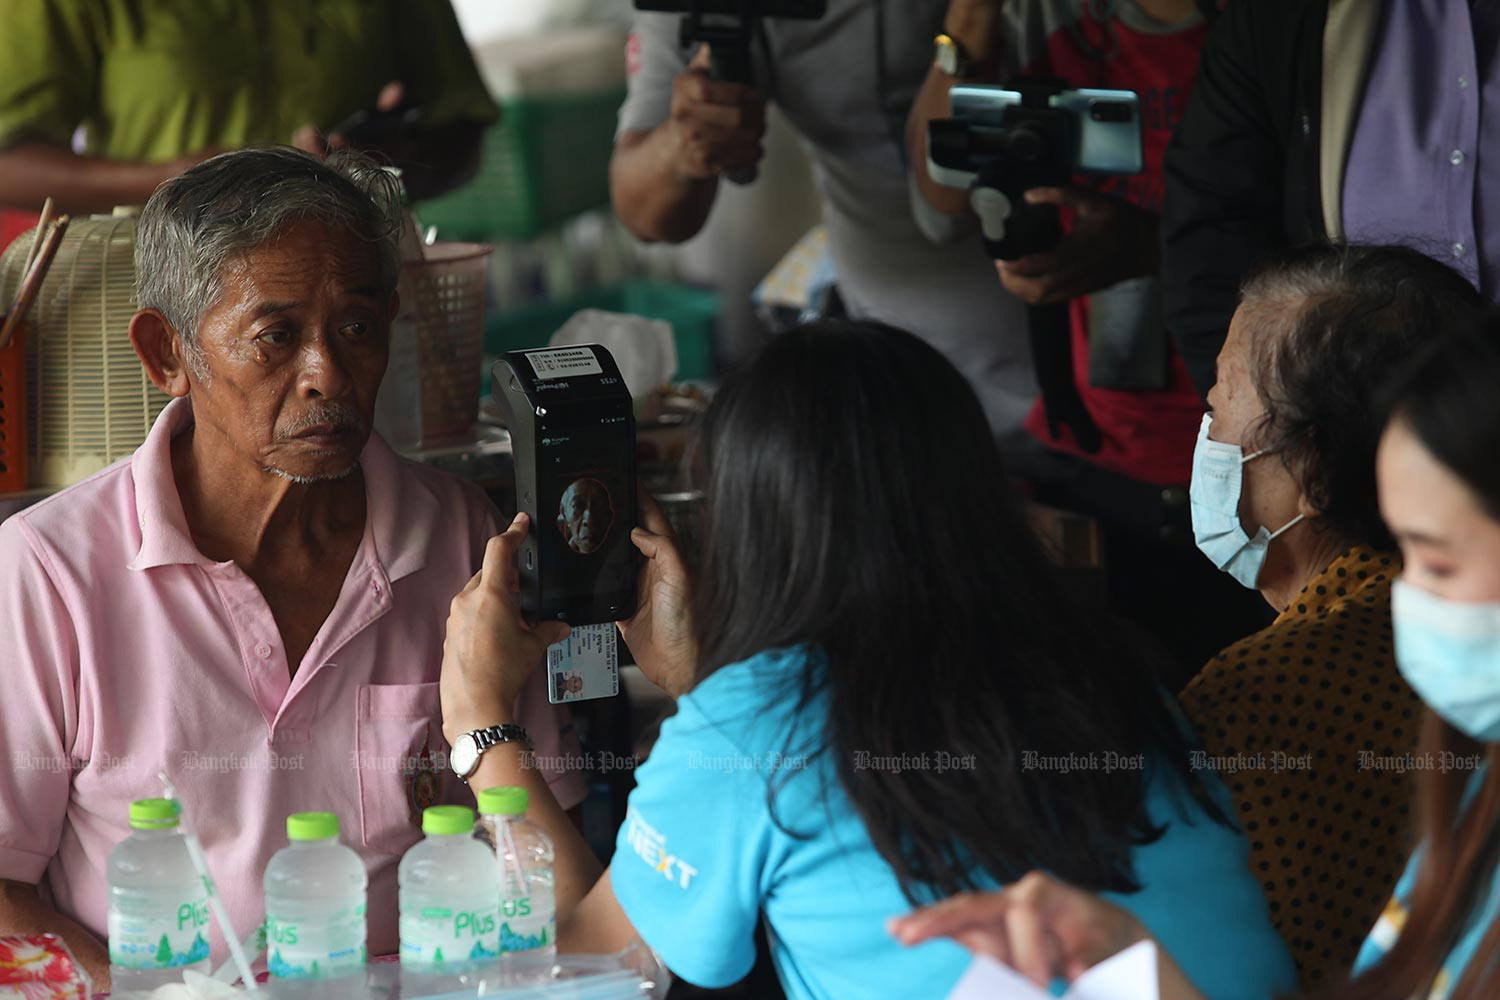 A helping hand: A Krungthai Bank staff member helps 70-year-old Jira Sukyan, a resident in tambon Bang Krachao, Samut Prakan's Phra Pradaeng district, register for financial assistance under the Rao Chana (We Win) scheme during a visit organised by the Ministry of Social Development and Human Security. (Photo by Apichart Jinakul)